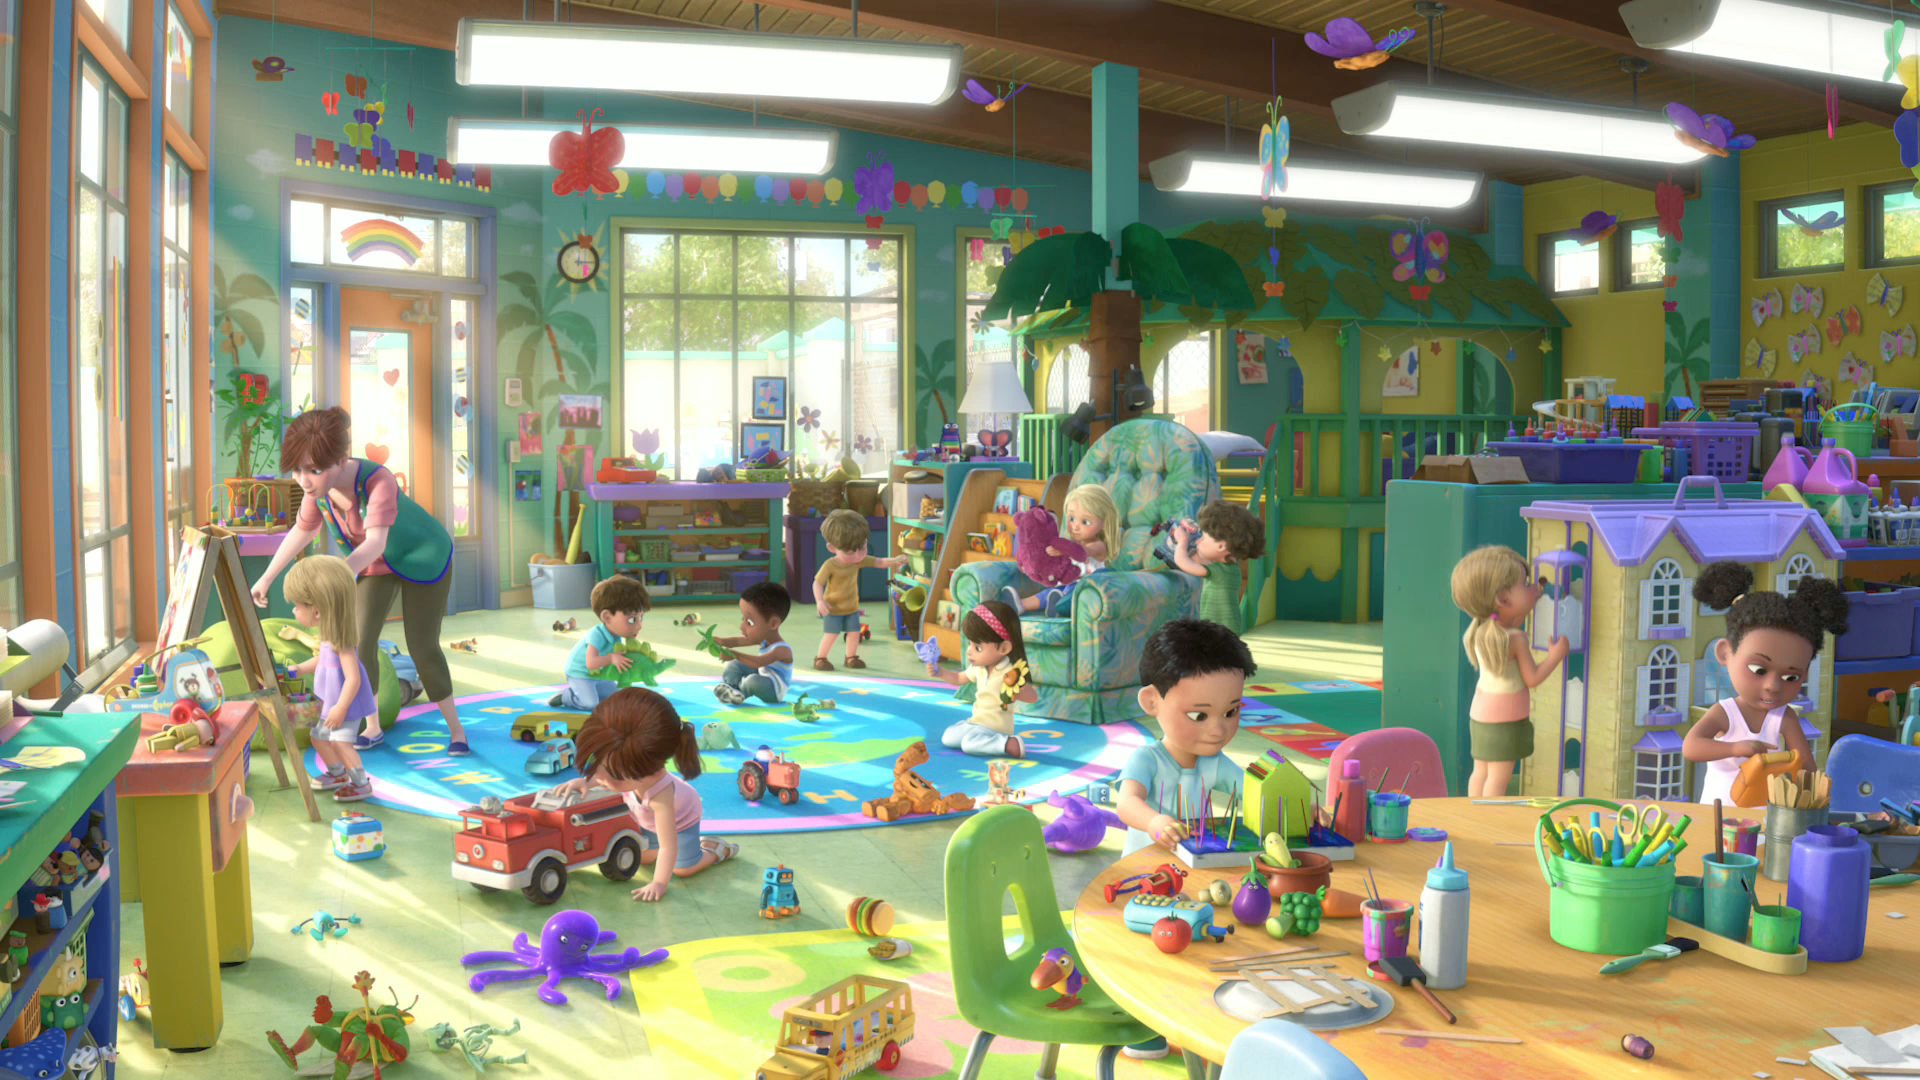 Day Care Toys For Toddler : Butterfly room pixar wiki fandom powered by wikia